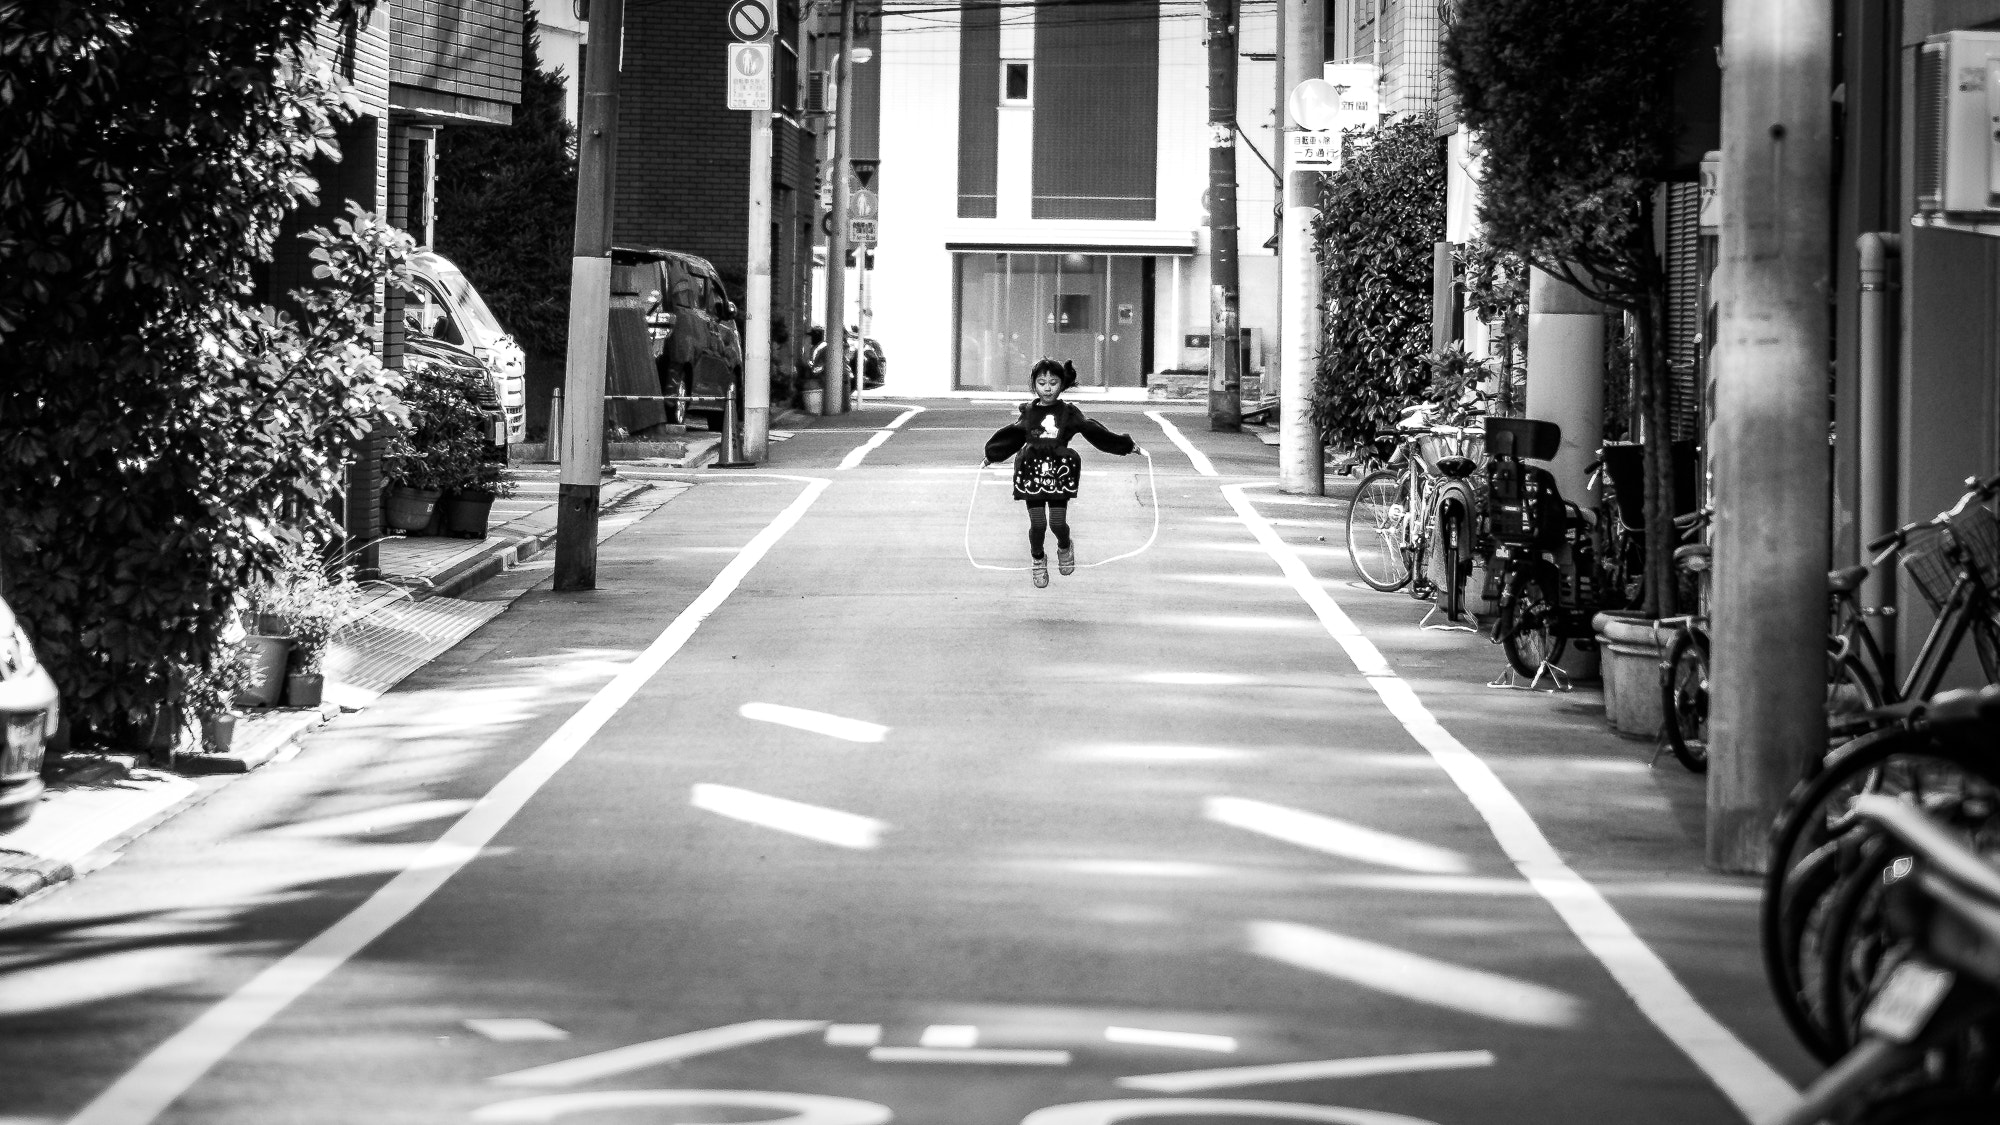 Filehappiness tokyo japan black and white street photography 241077215 jpeg